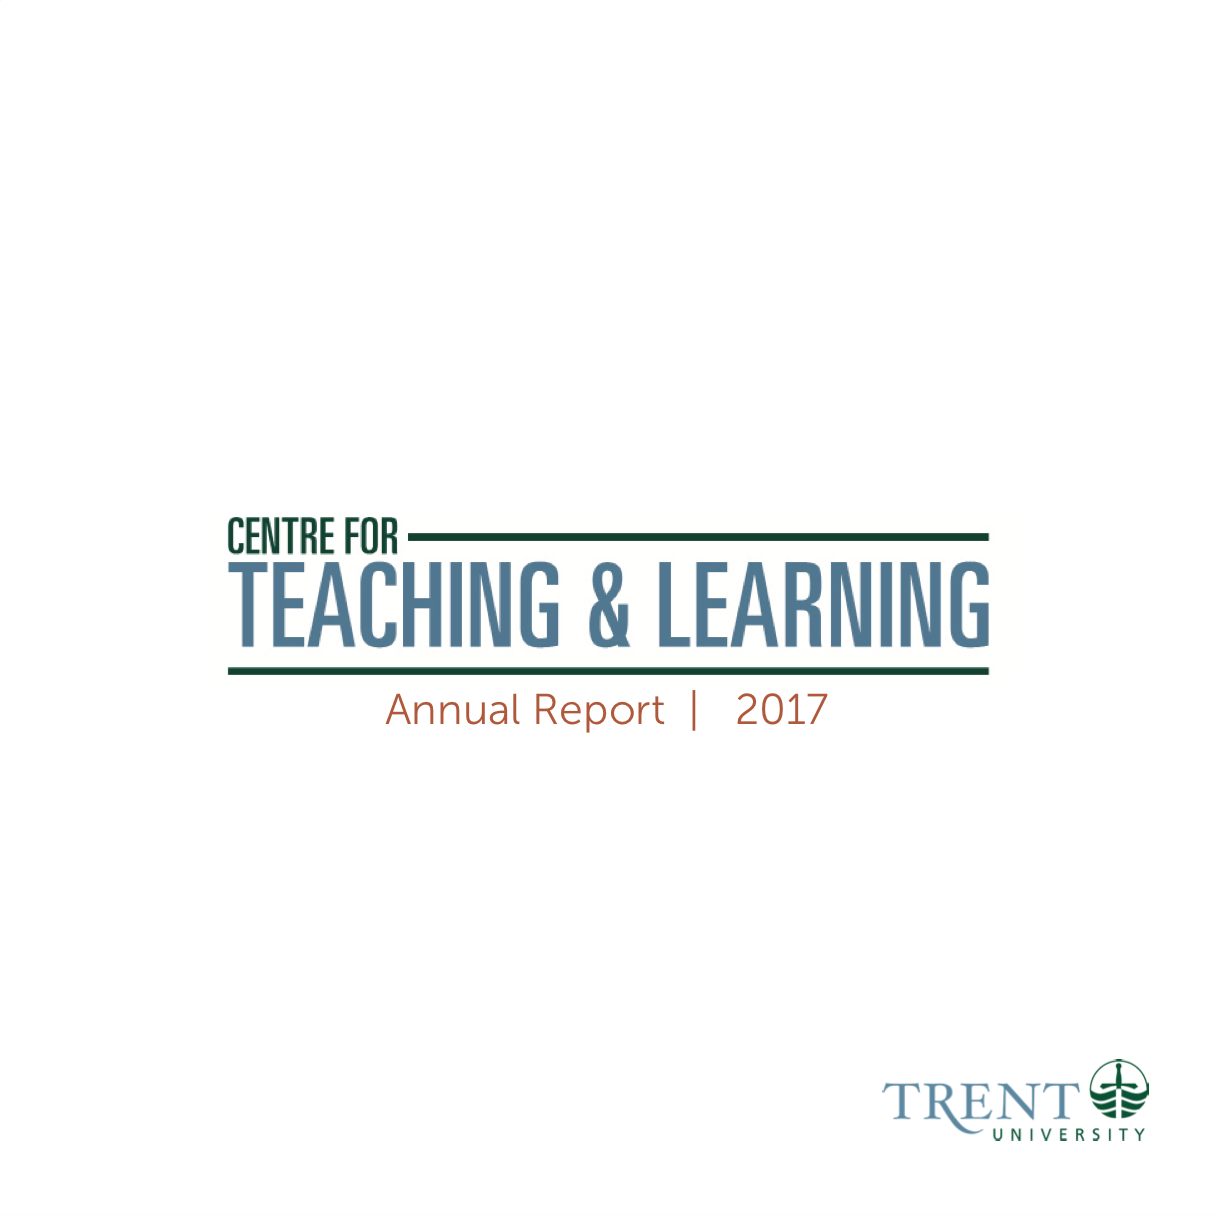 CTL logo on basic white cover for 2017 Annual Report